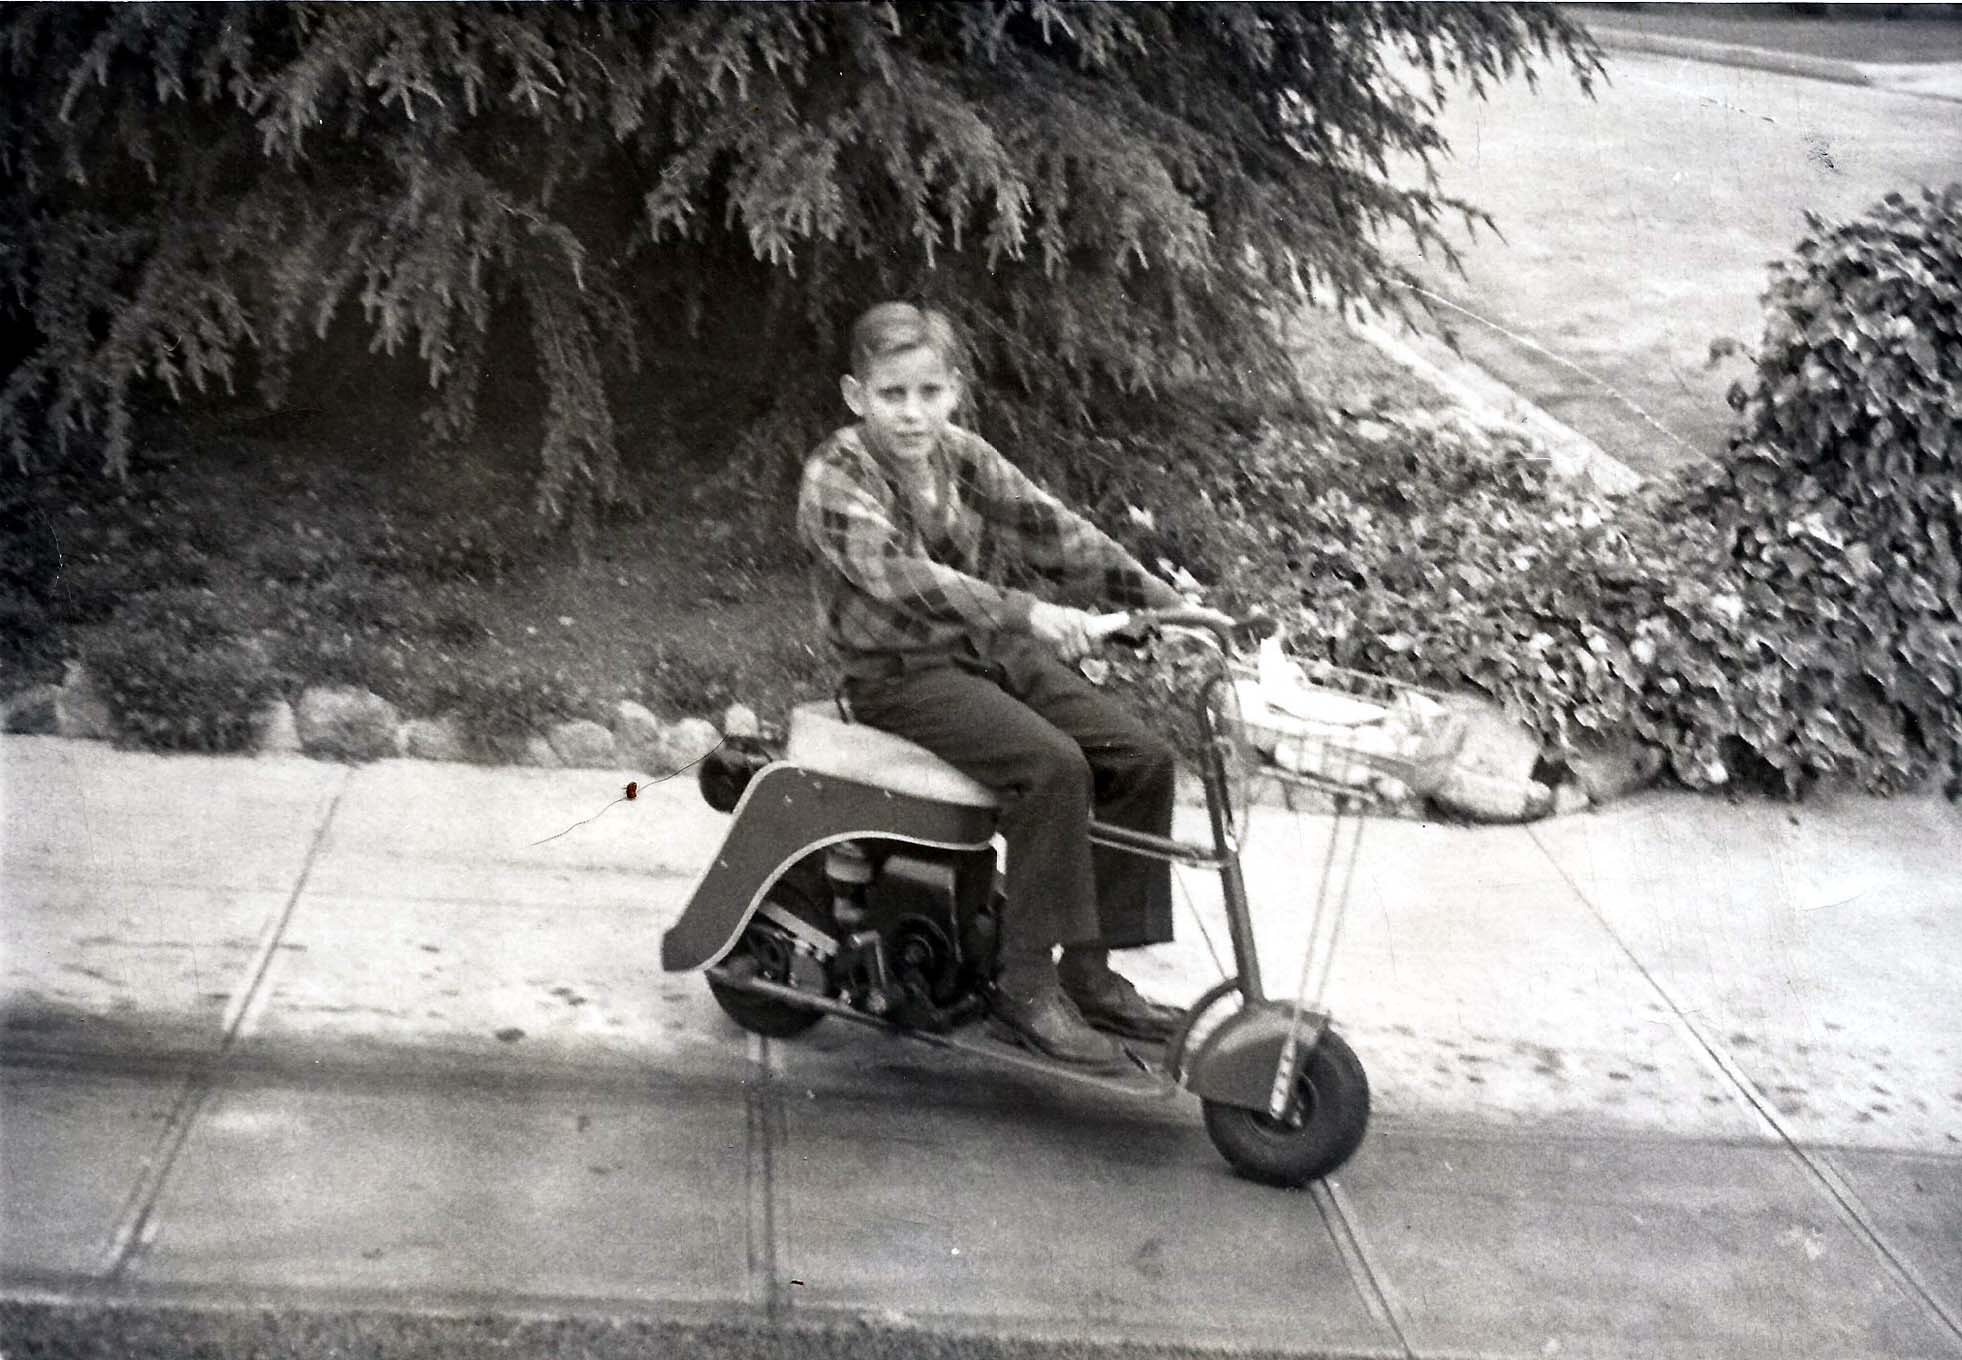 Skip Hedrich on his Kiawatha Doodlebug scooter at age 9, and standing proudly with his American Eagle streamliner on the salt. Could his 9-year-old self have imagined a racing career that would lead him to the 300 MPH Club?